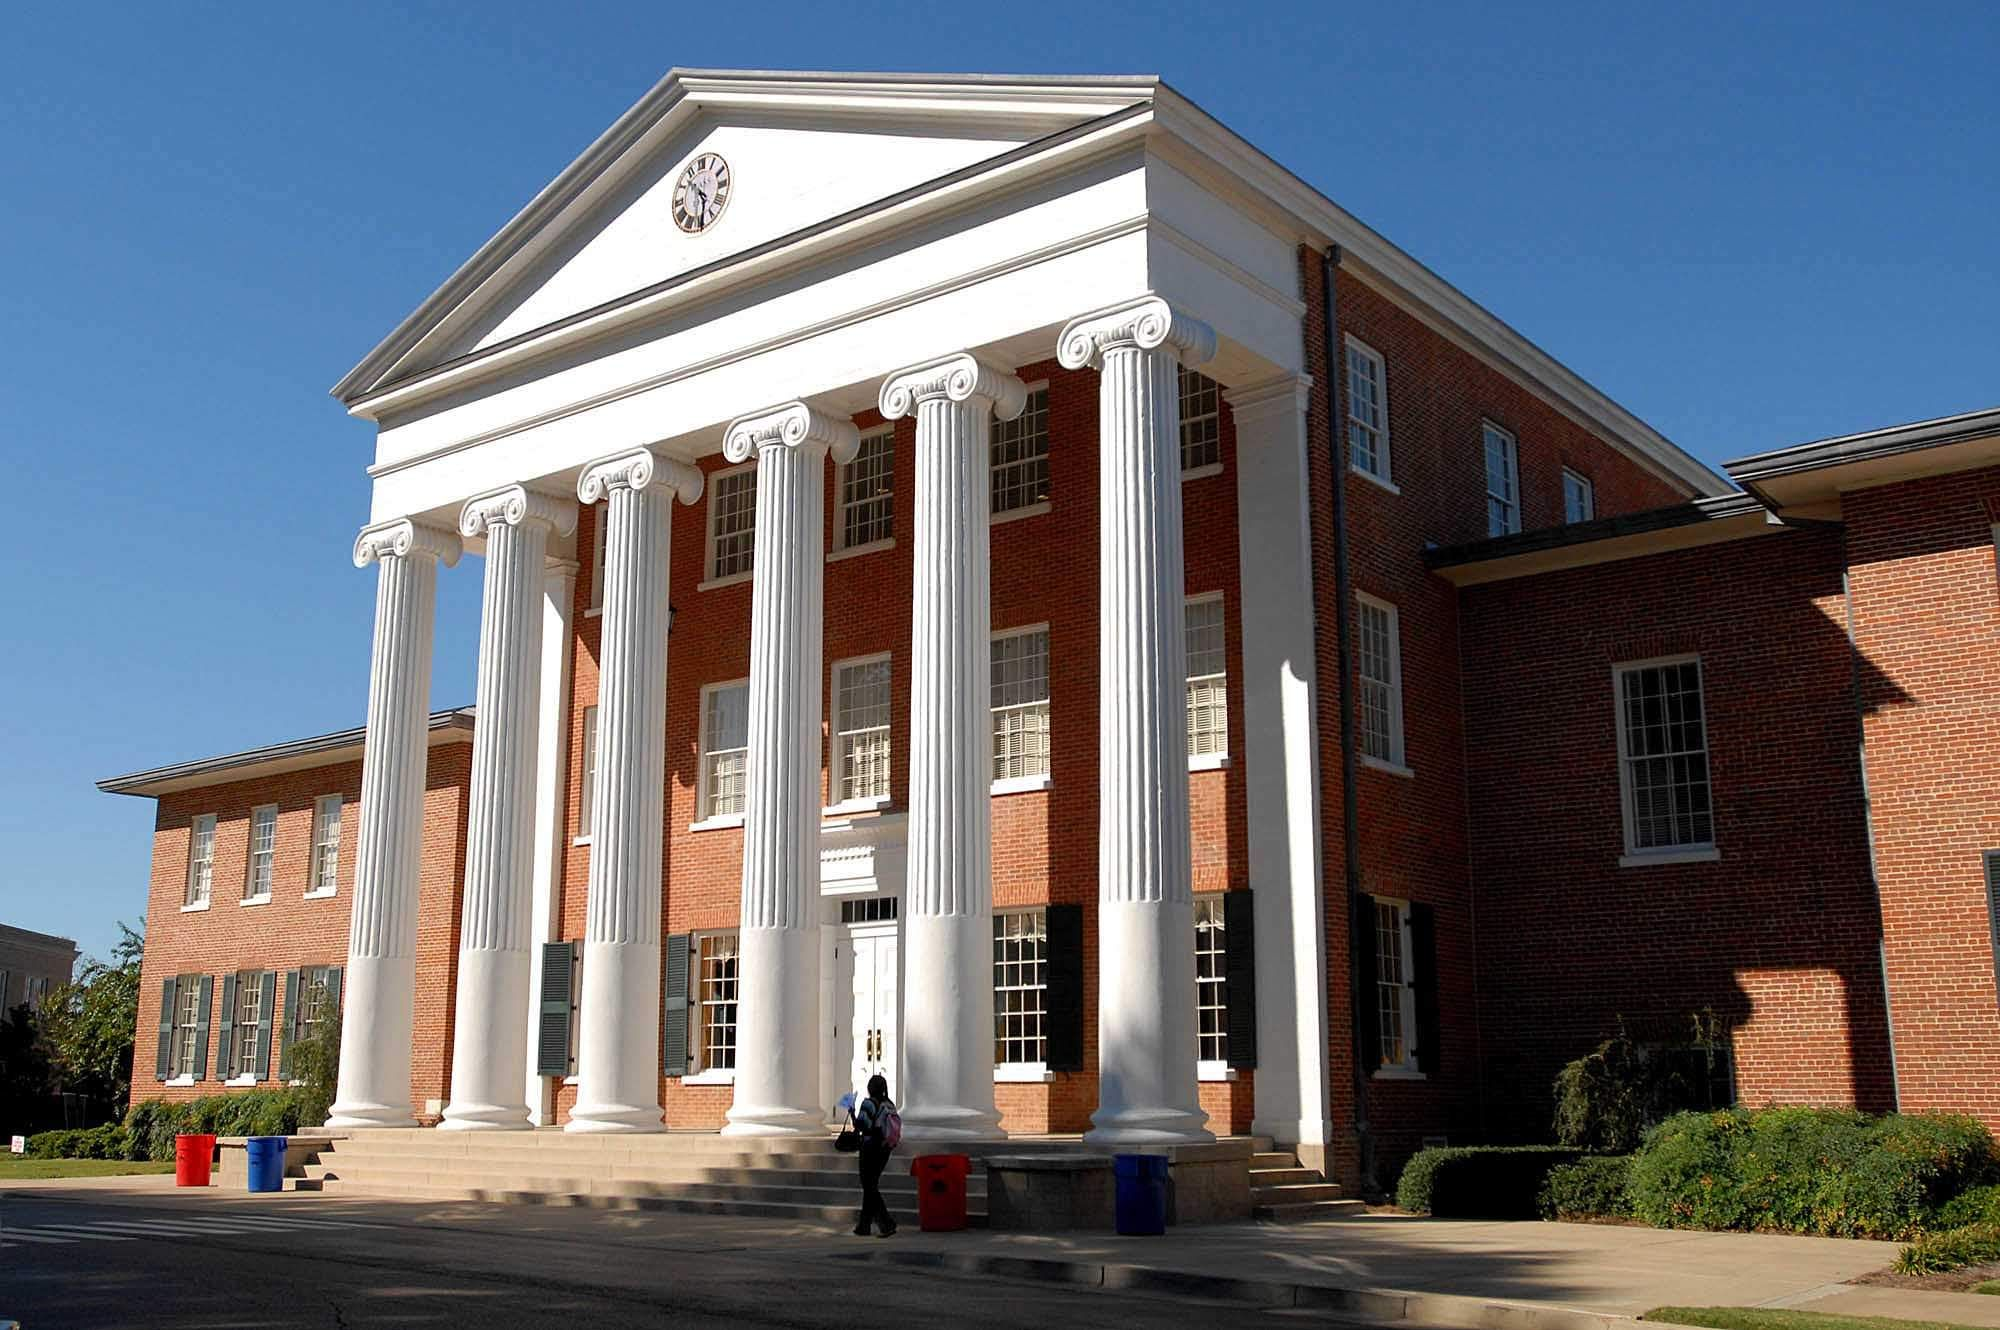 Ole Miss named most beautiful campus, party ranking drops